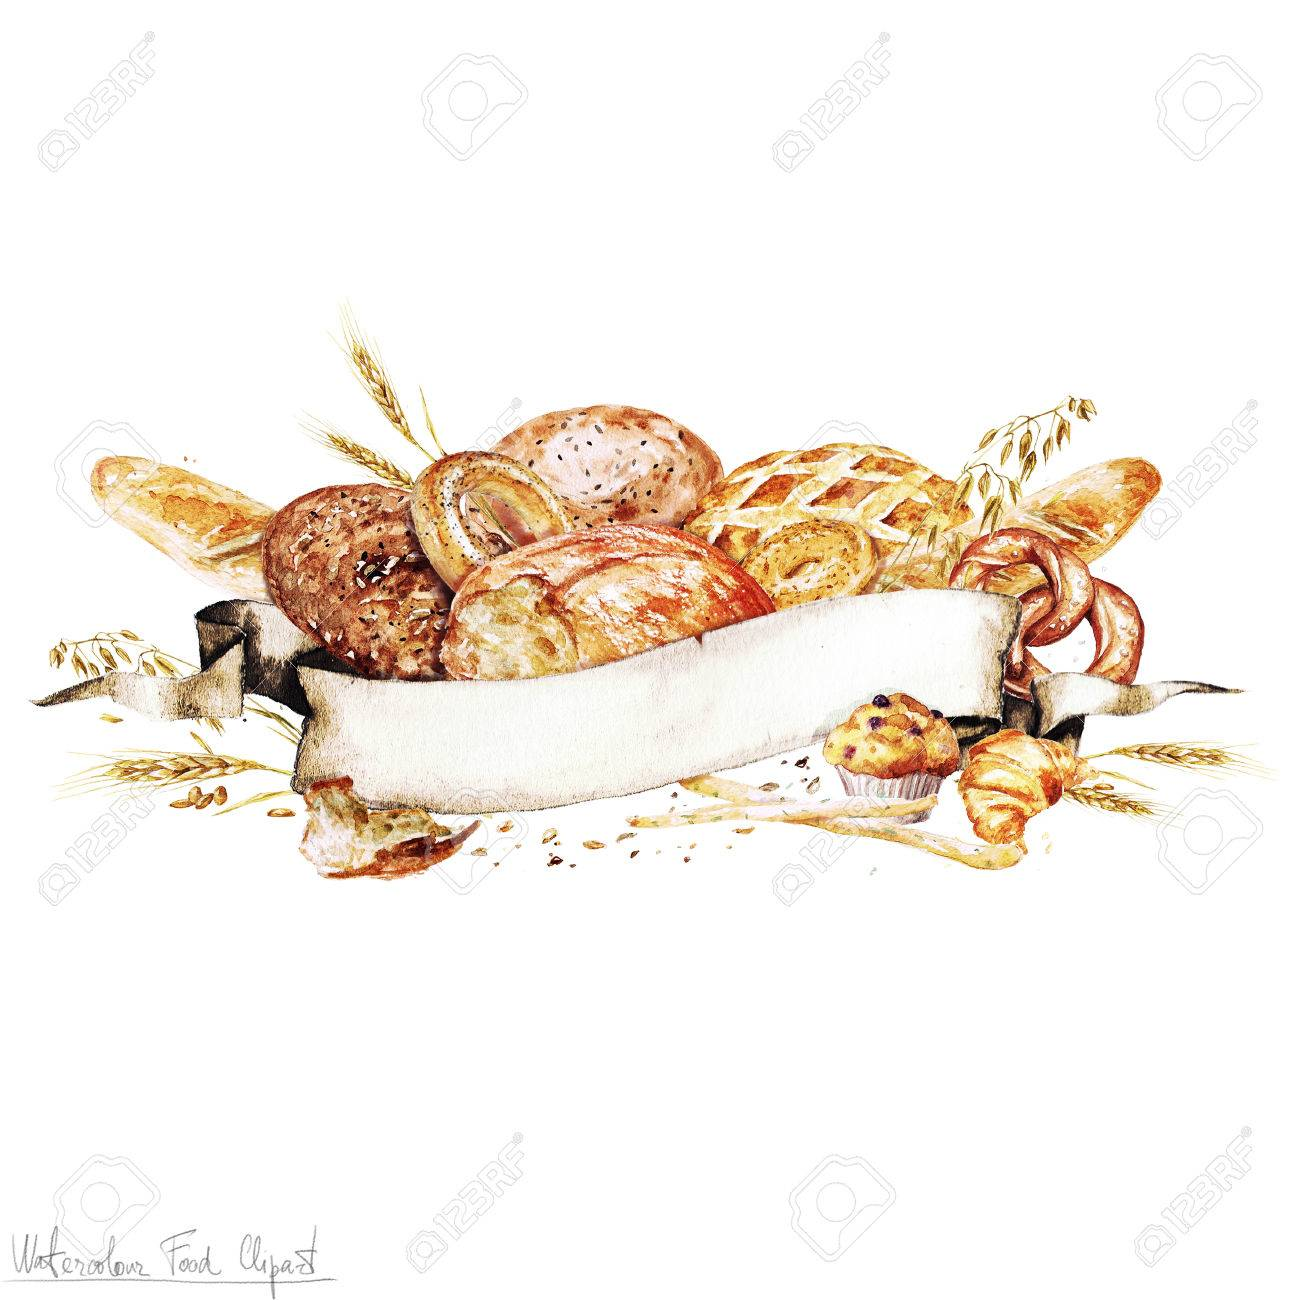 Watercolor Ribbon banner - Cooking Bread - 53240480